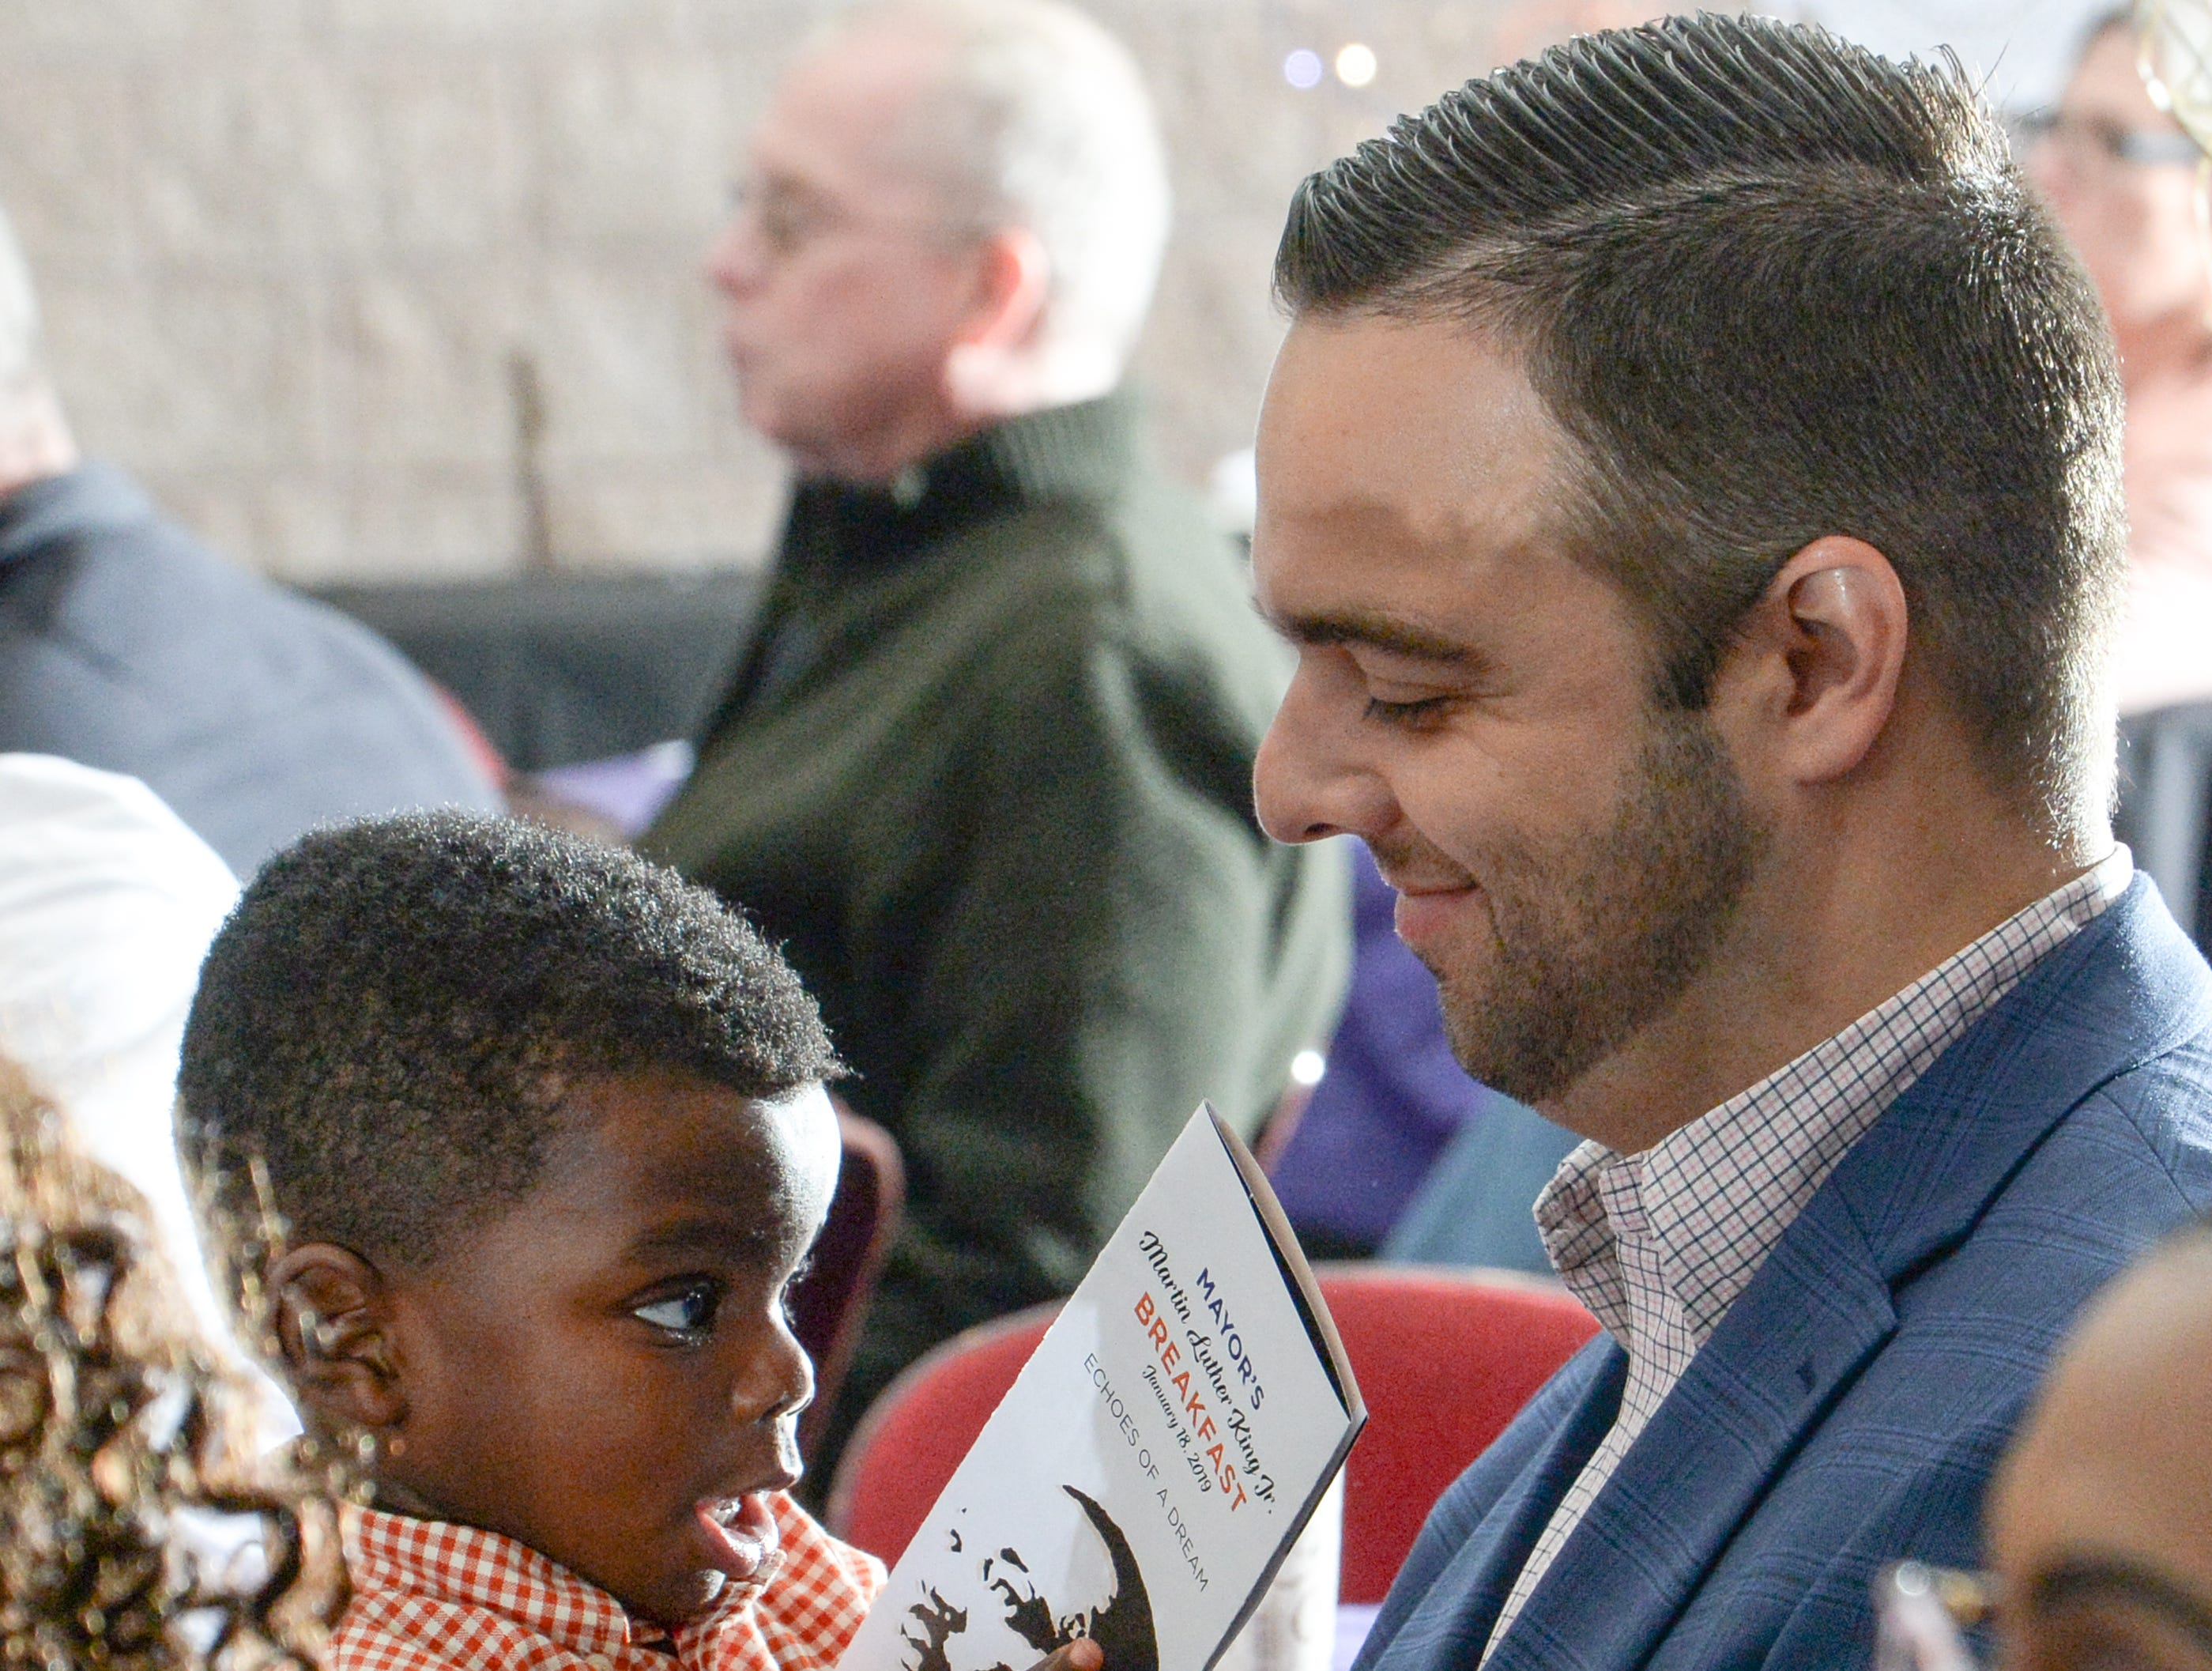 Brazeal Wright, left, holds a program with his father John Wright, Jr., during the Mayor's Martin Luther King Jr Breakfast in the Anderson Civic Center Friday, January 18, 2019.